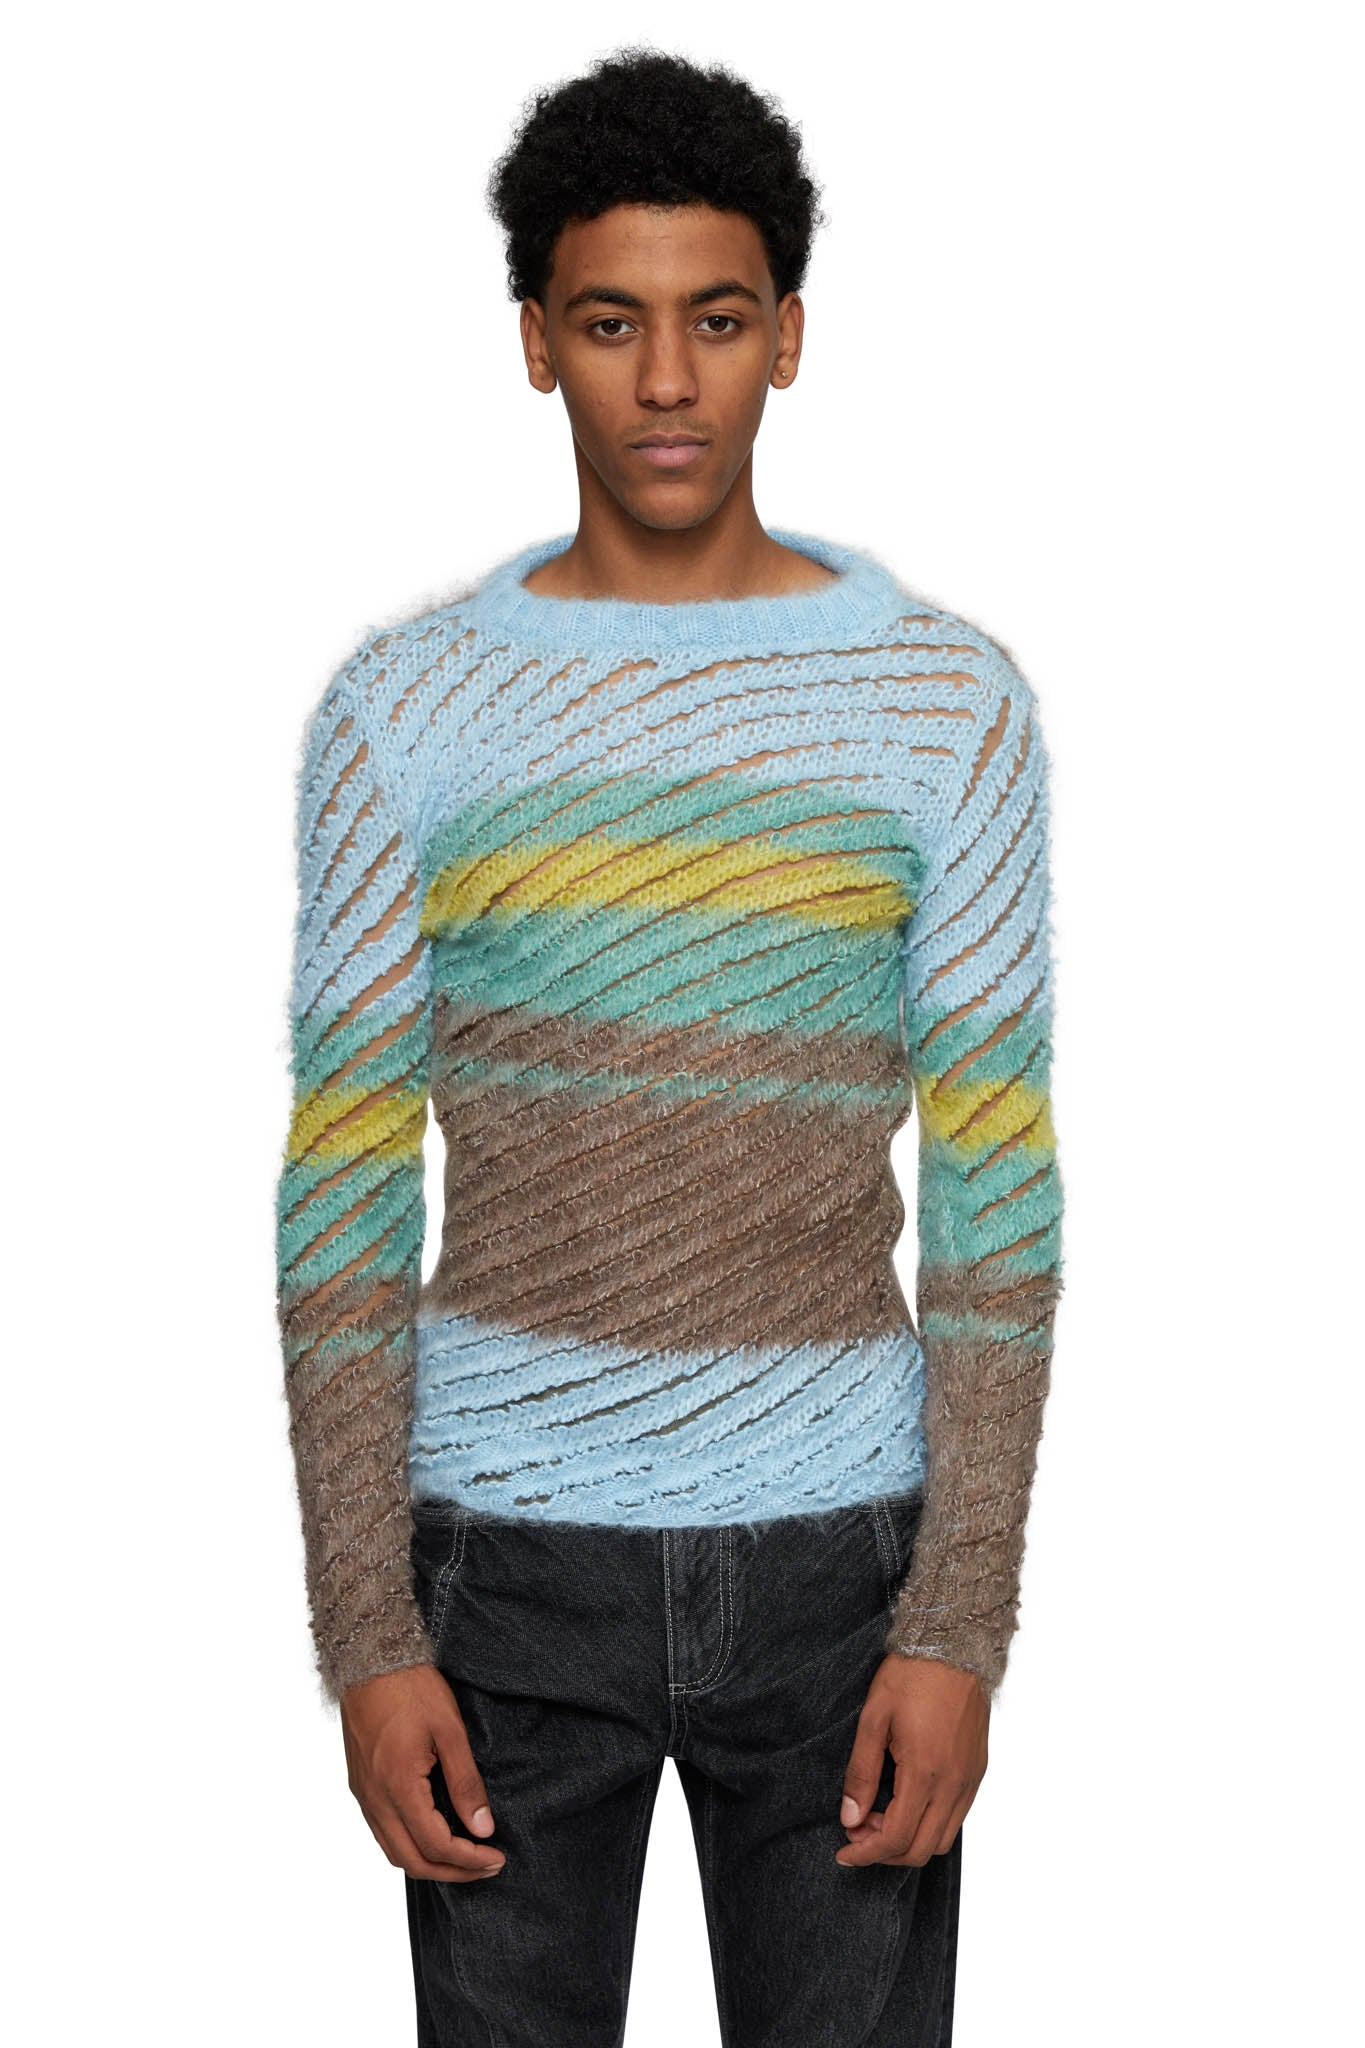 Y/PROJECT, STRIPED LOOP KNIT PULLOVER, SKY BLUE, WMPULL38-S19 Y19 & Y20, AW20, MENS, PULLOVER